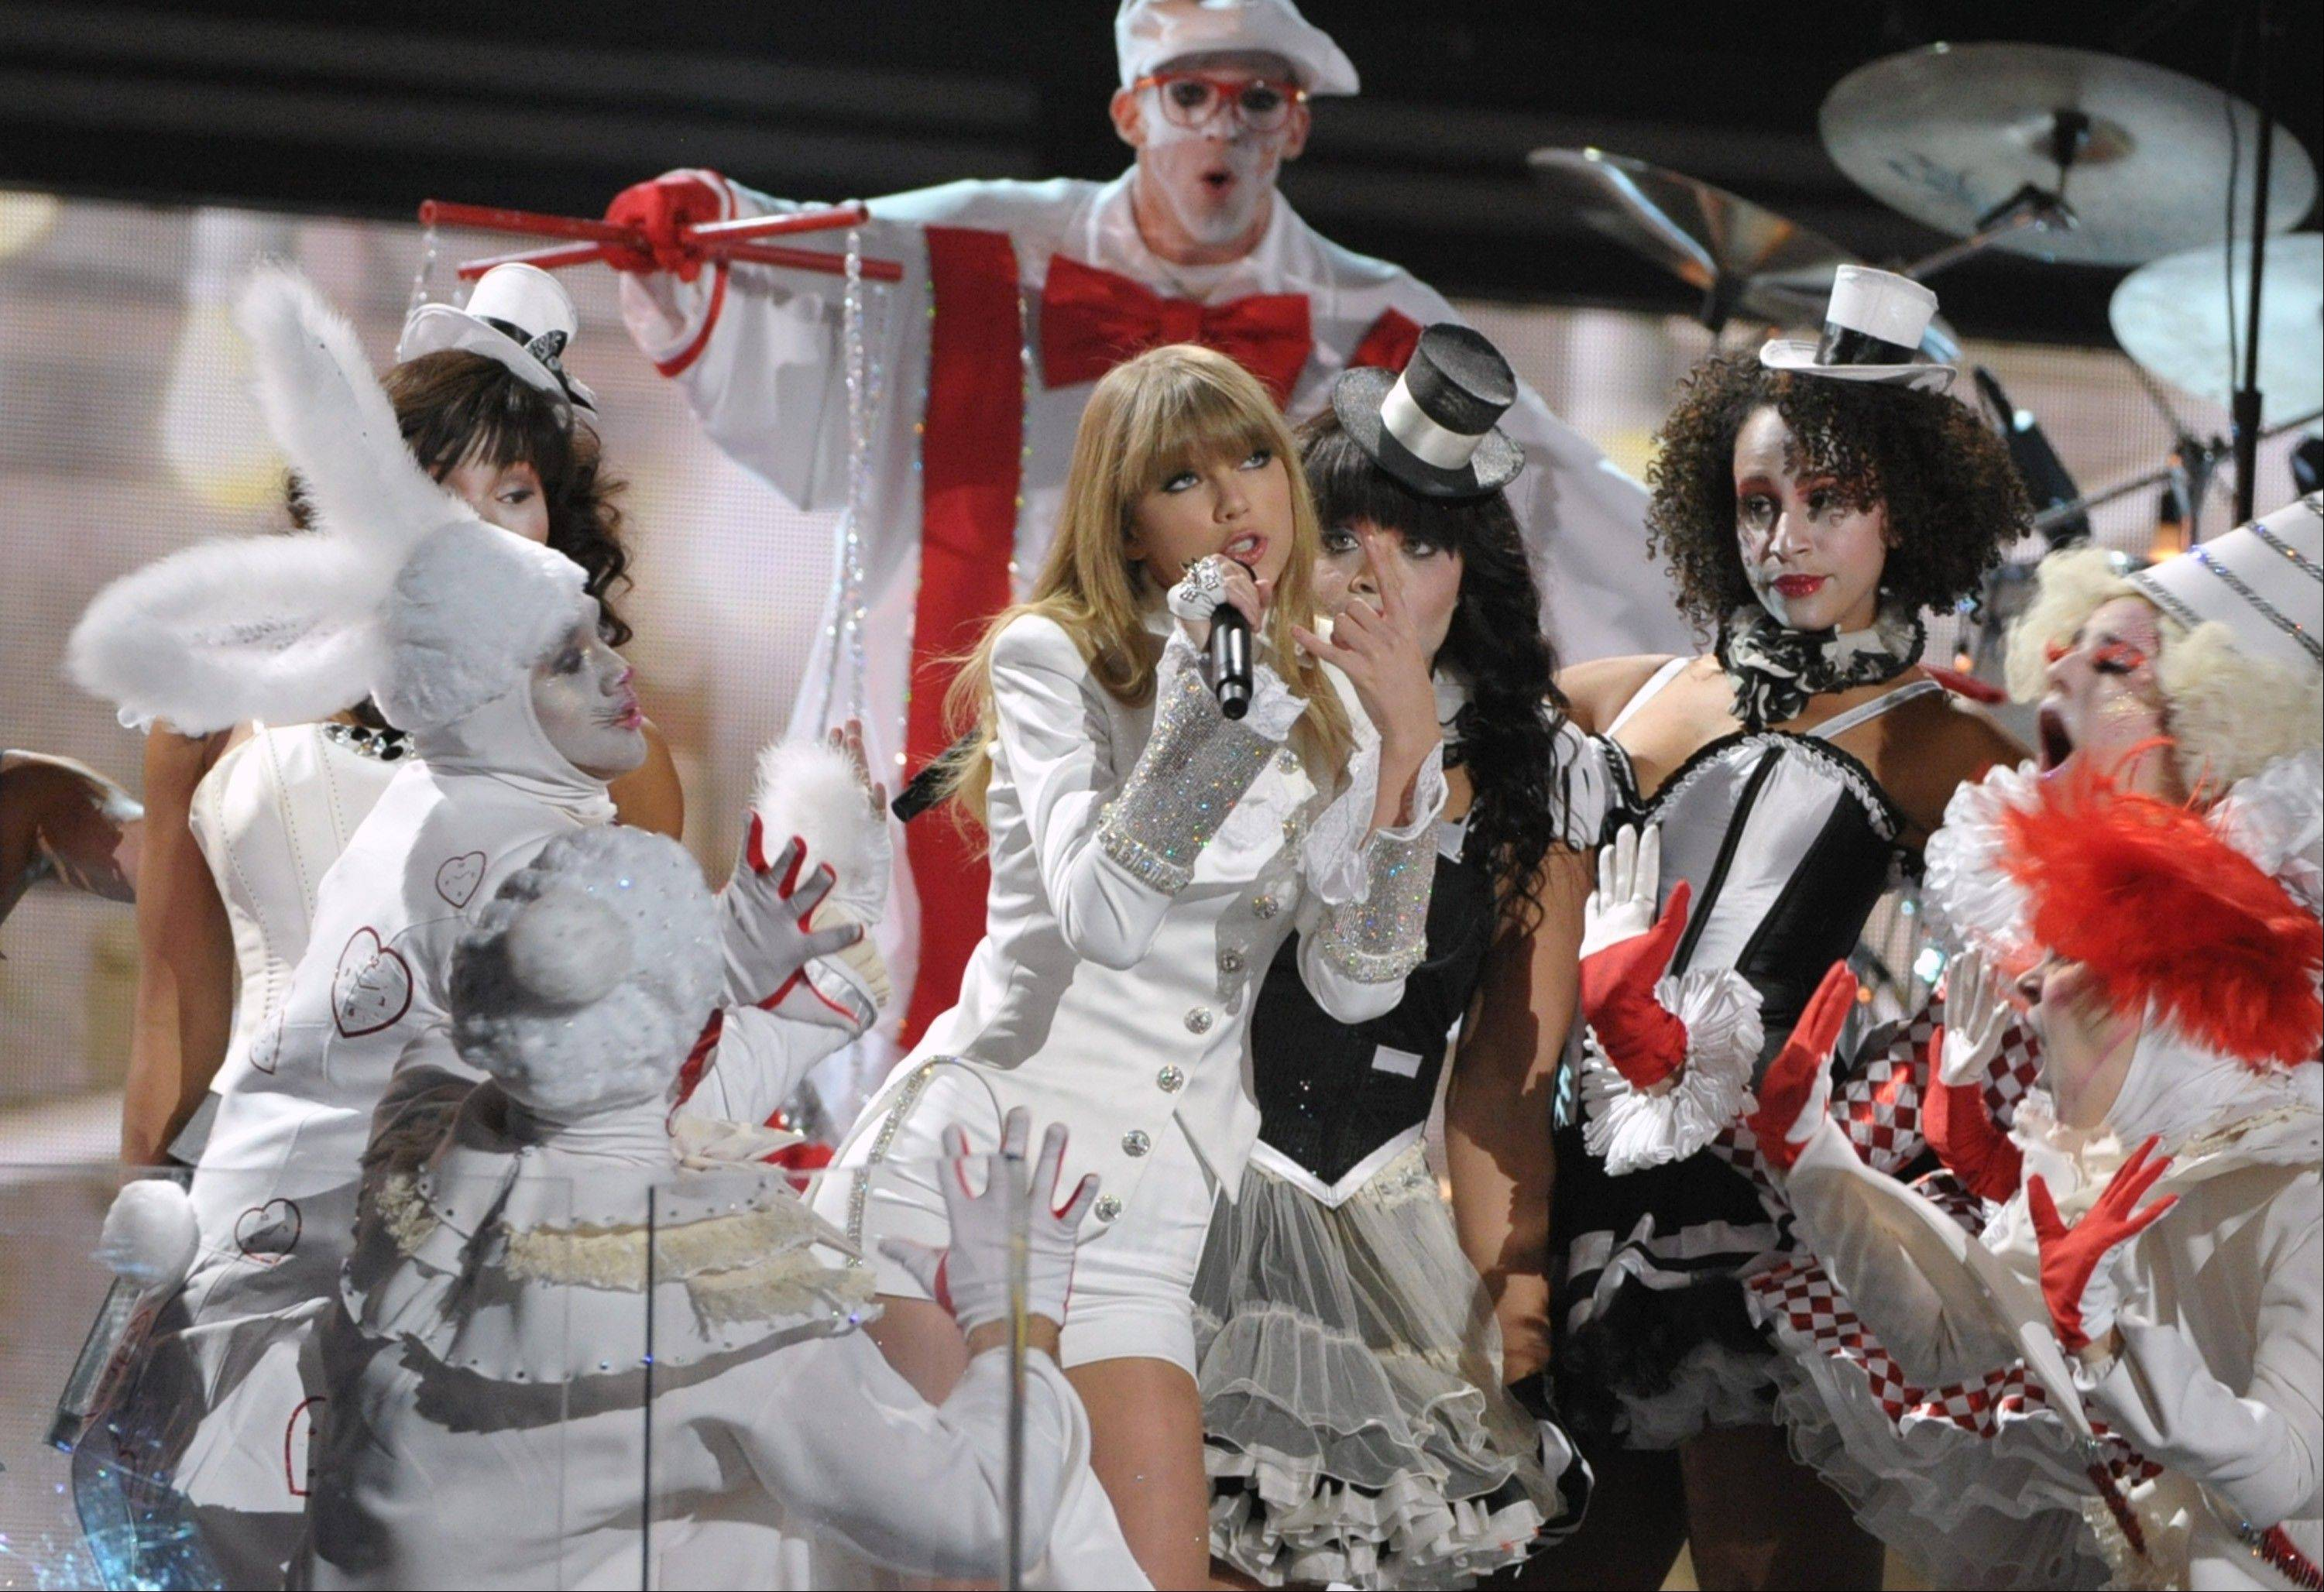 Taylor Swift performs during the opening of the 55th annual Grammy Awards on Sunday, Feb. 10, 2013, in Los Angeles.